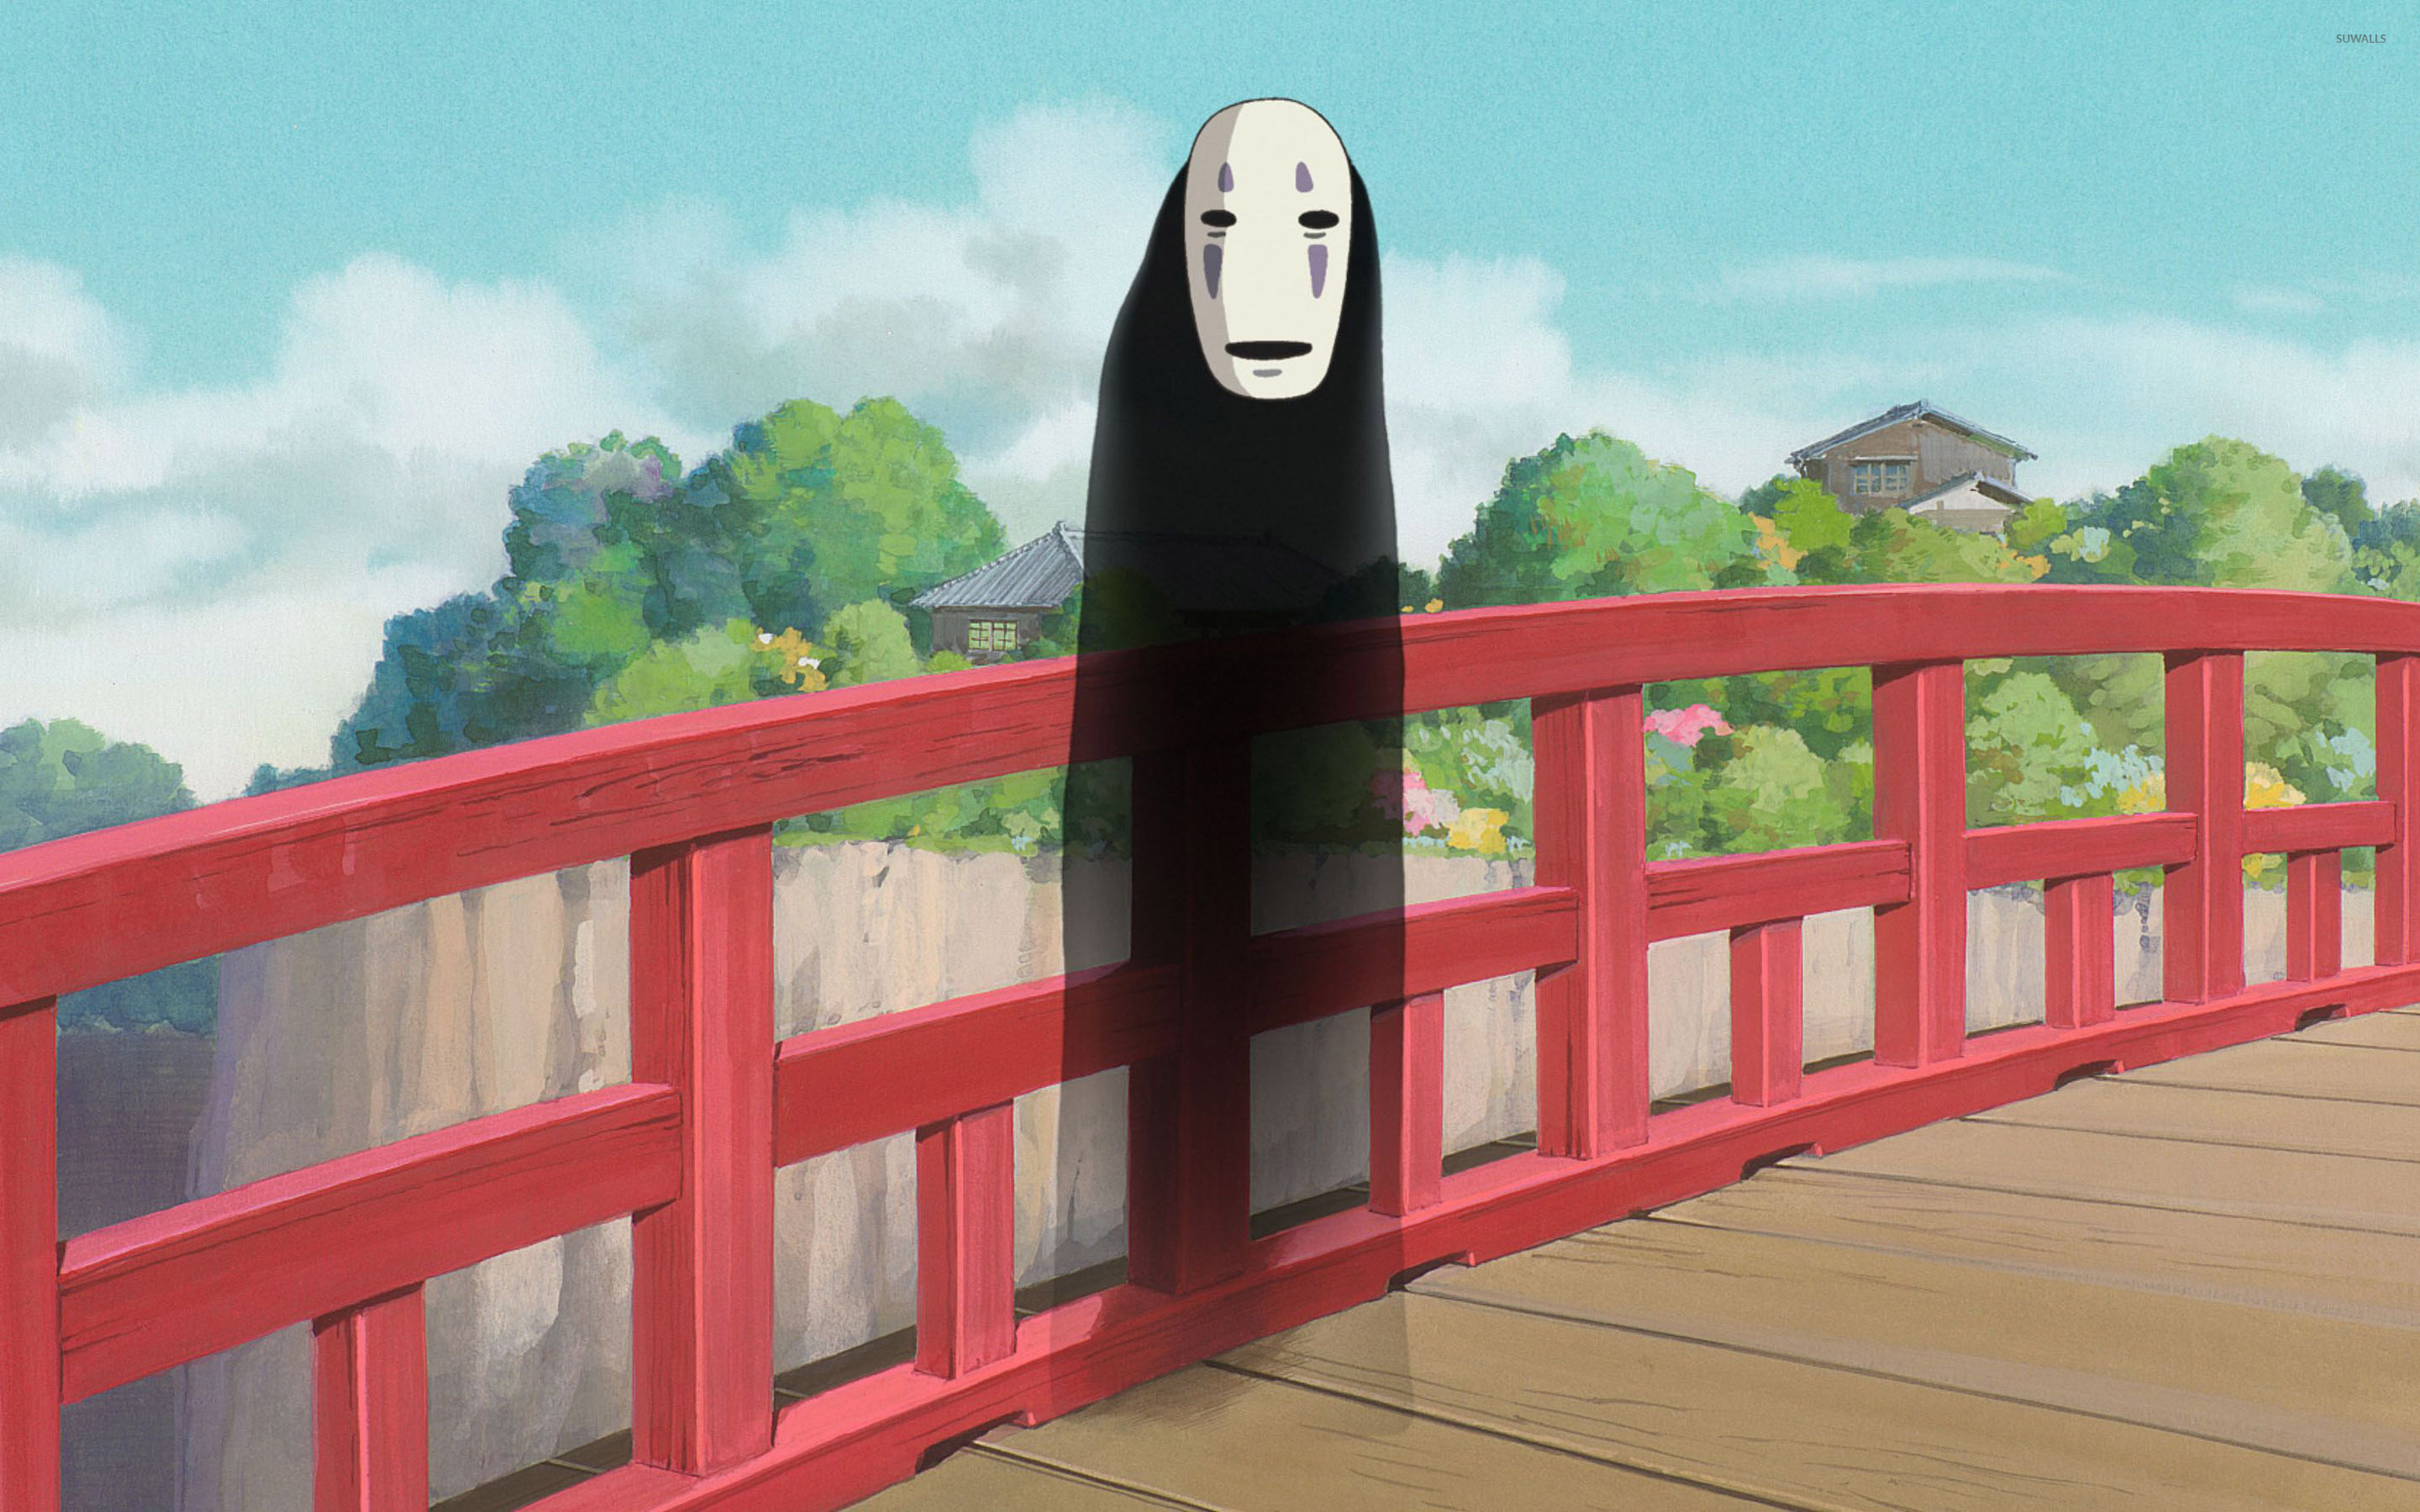 No-Face - Spirited Away wallpaper - Anime wallpapers - #27383